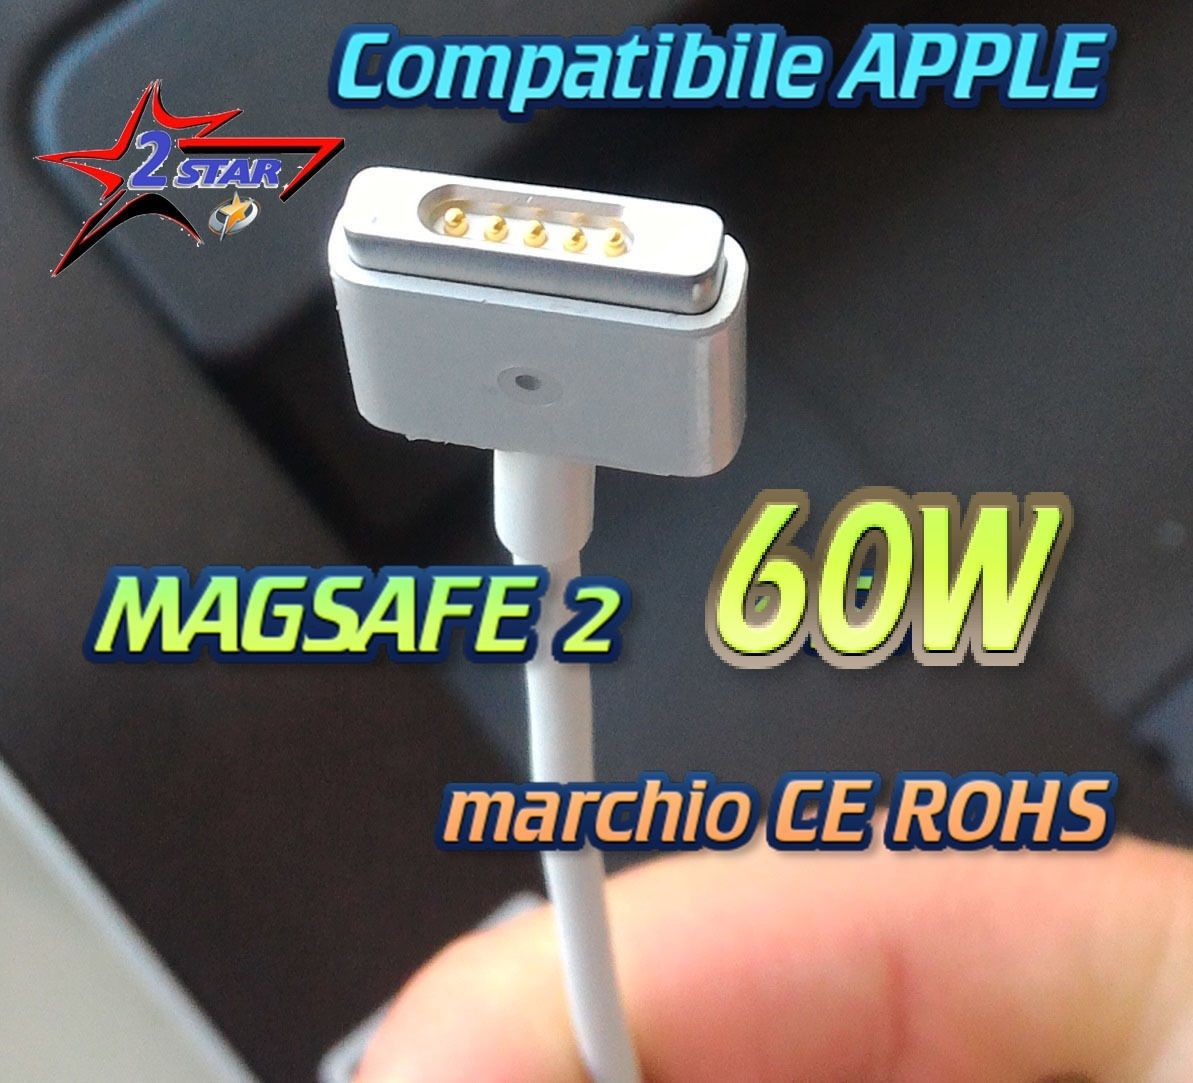 Alimentatore 60W per MacBook Pro  caricabatterie MagSafe 2 MACBOOK